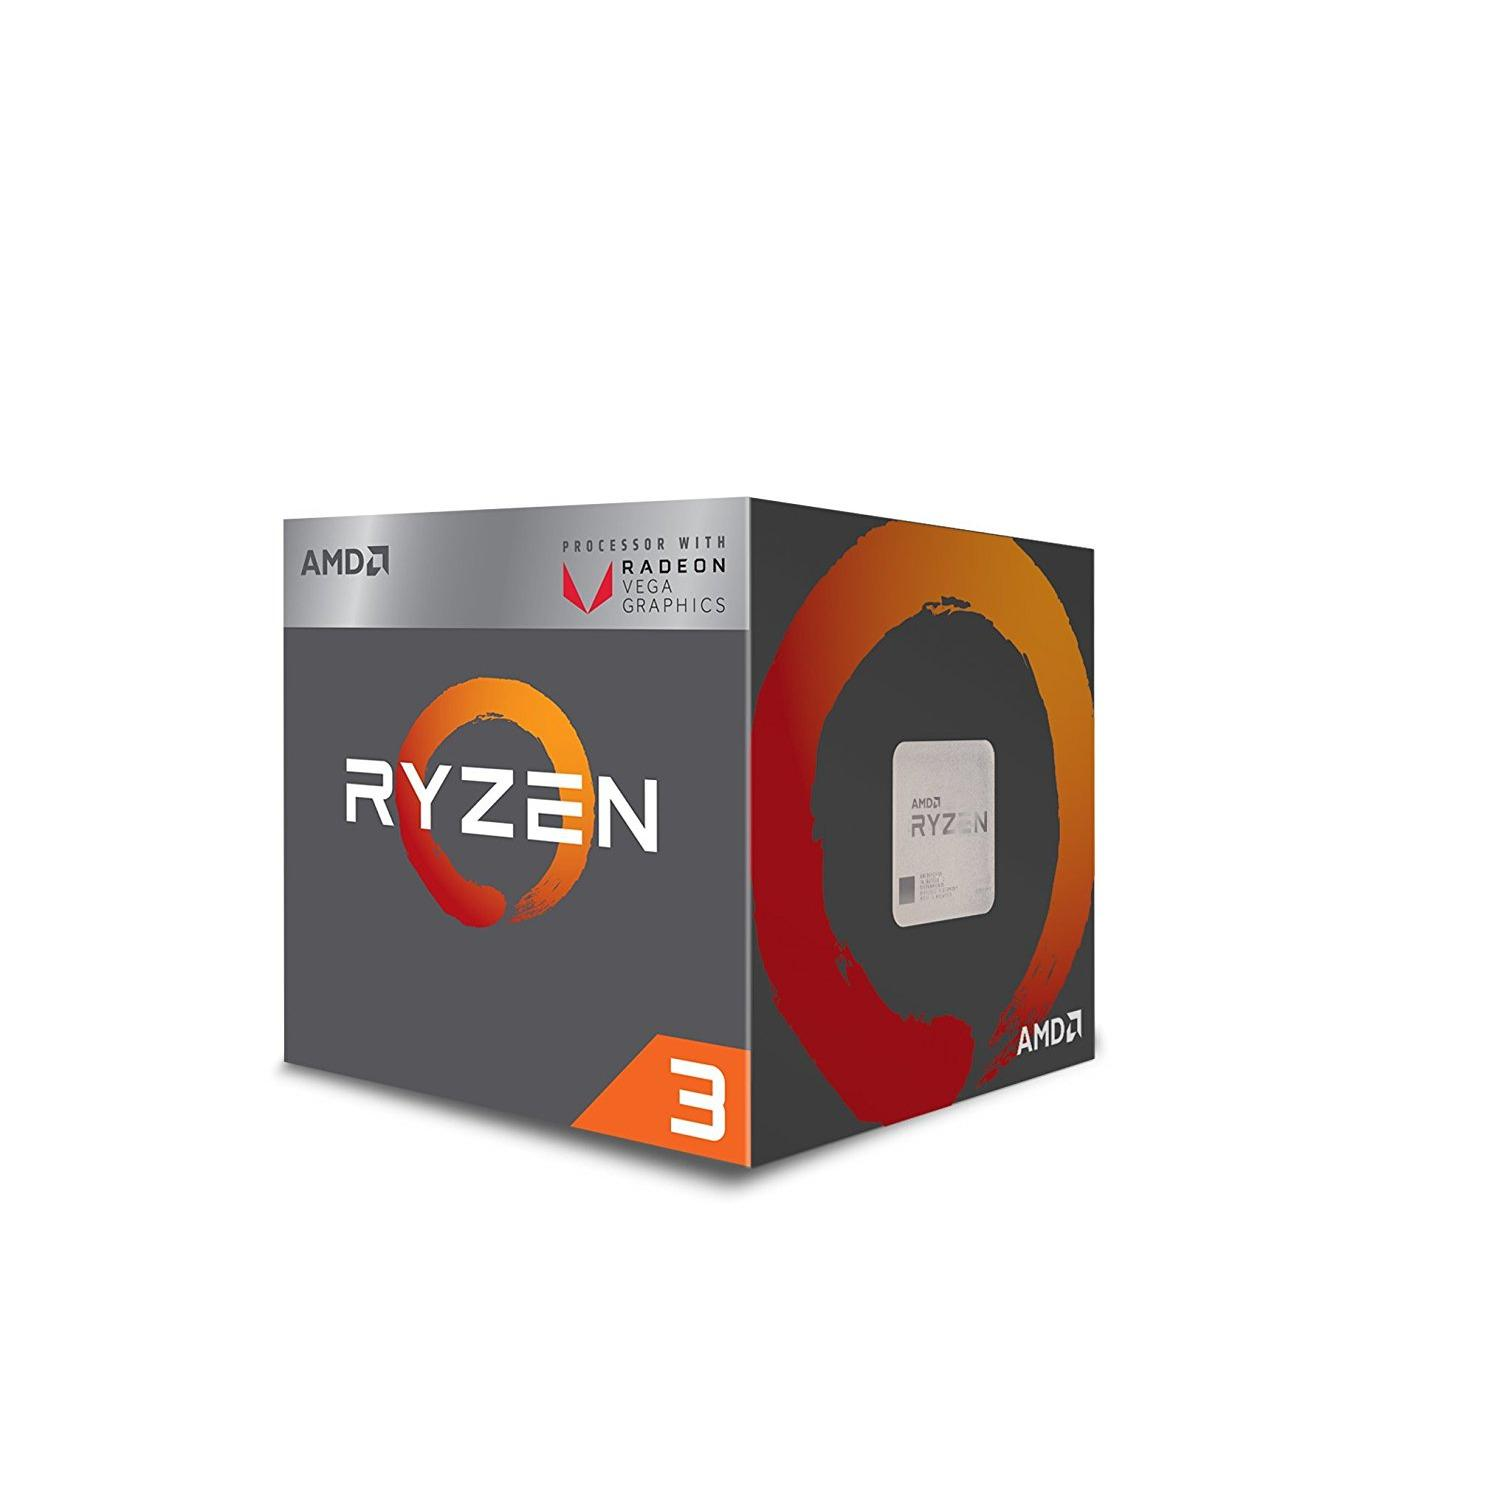 Cheap Amd Ryzen 3 2200G 3 7Ghz 4C4T 65W 6Mb Cache Cpu With Radeon Vega 8 Graphics Am4 Socket With Wraith Stealth Cooler Online